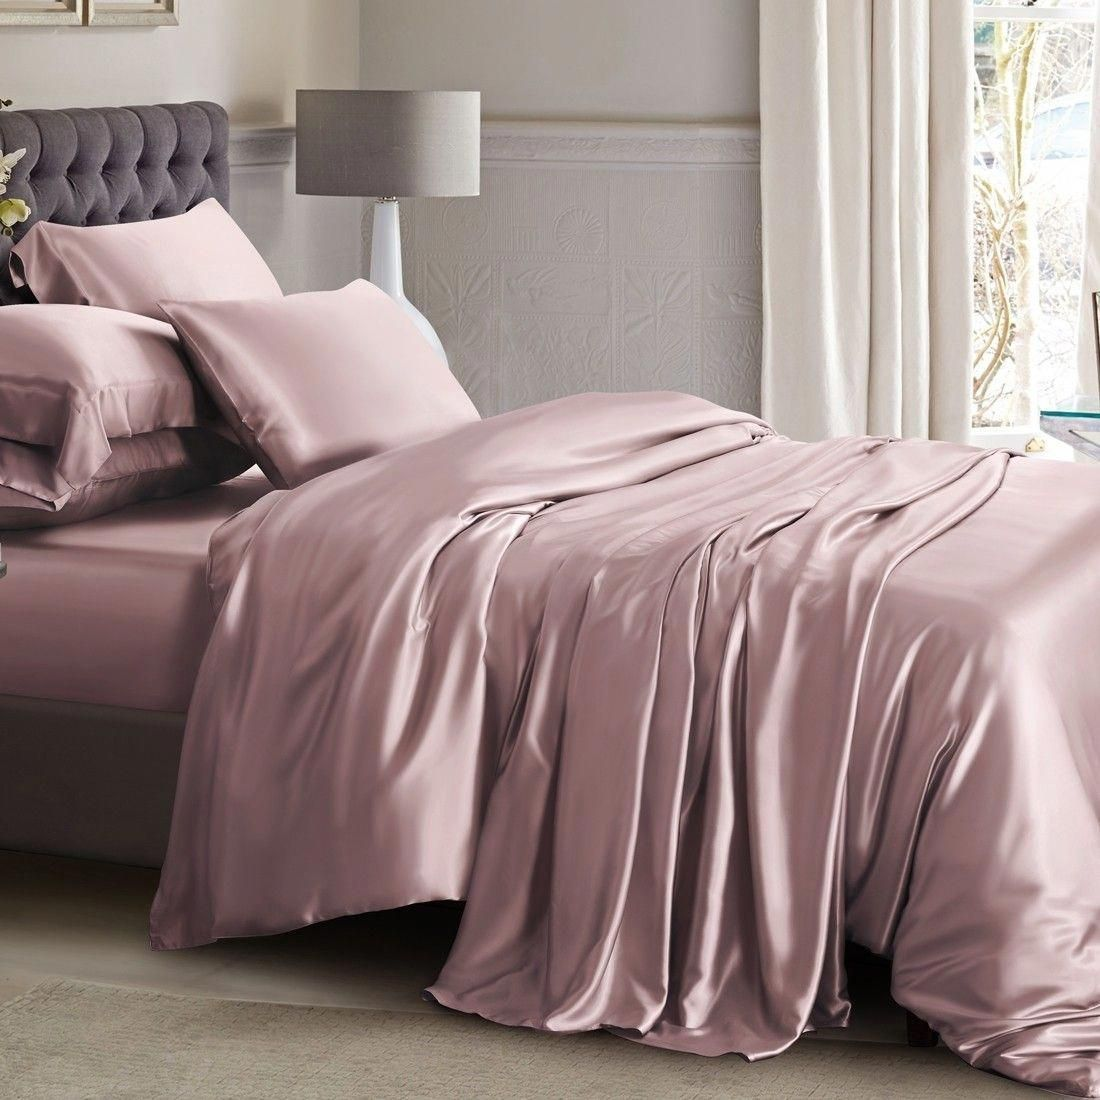 Top Bed Sheets Brands In India #BedLinenEgyptianCotton Product  ID:4877860786 #CoolBEDDINGSETS | Bed linens luxury, Bed linen design,  Luxury bedding sets